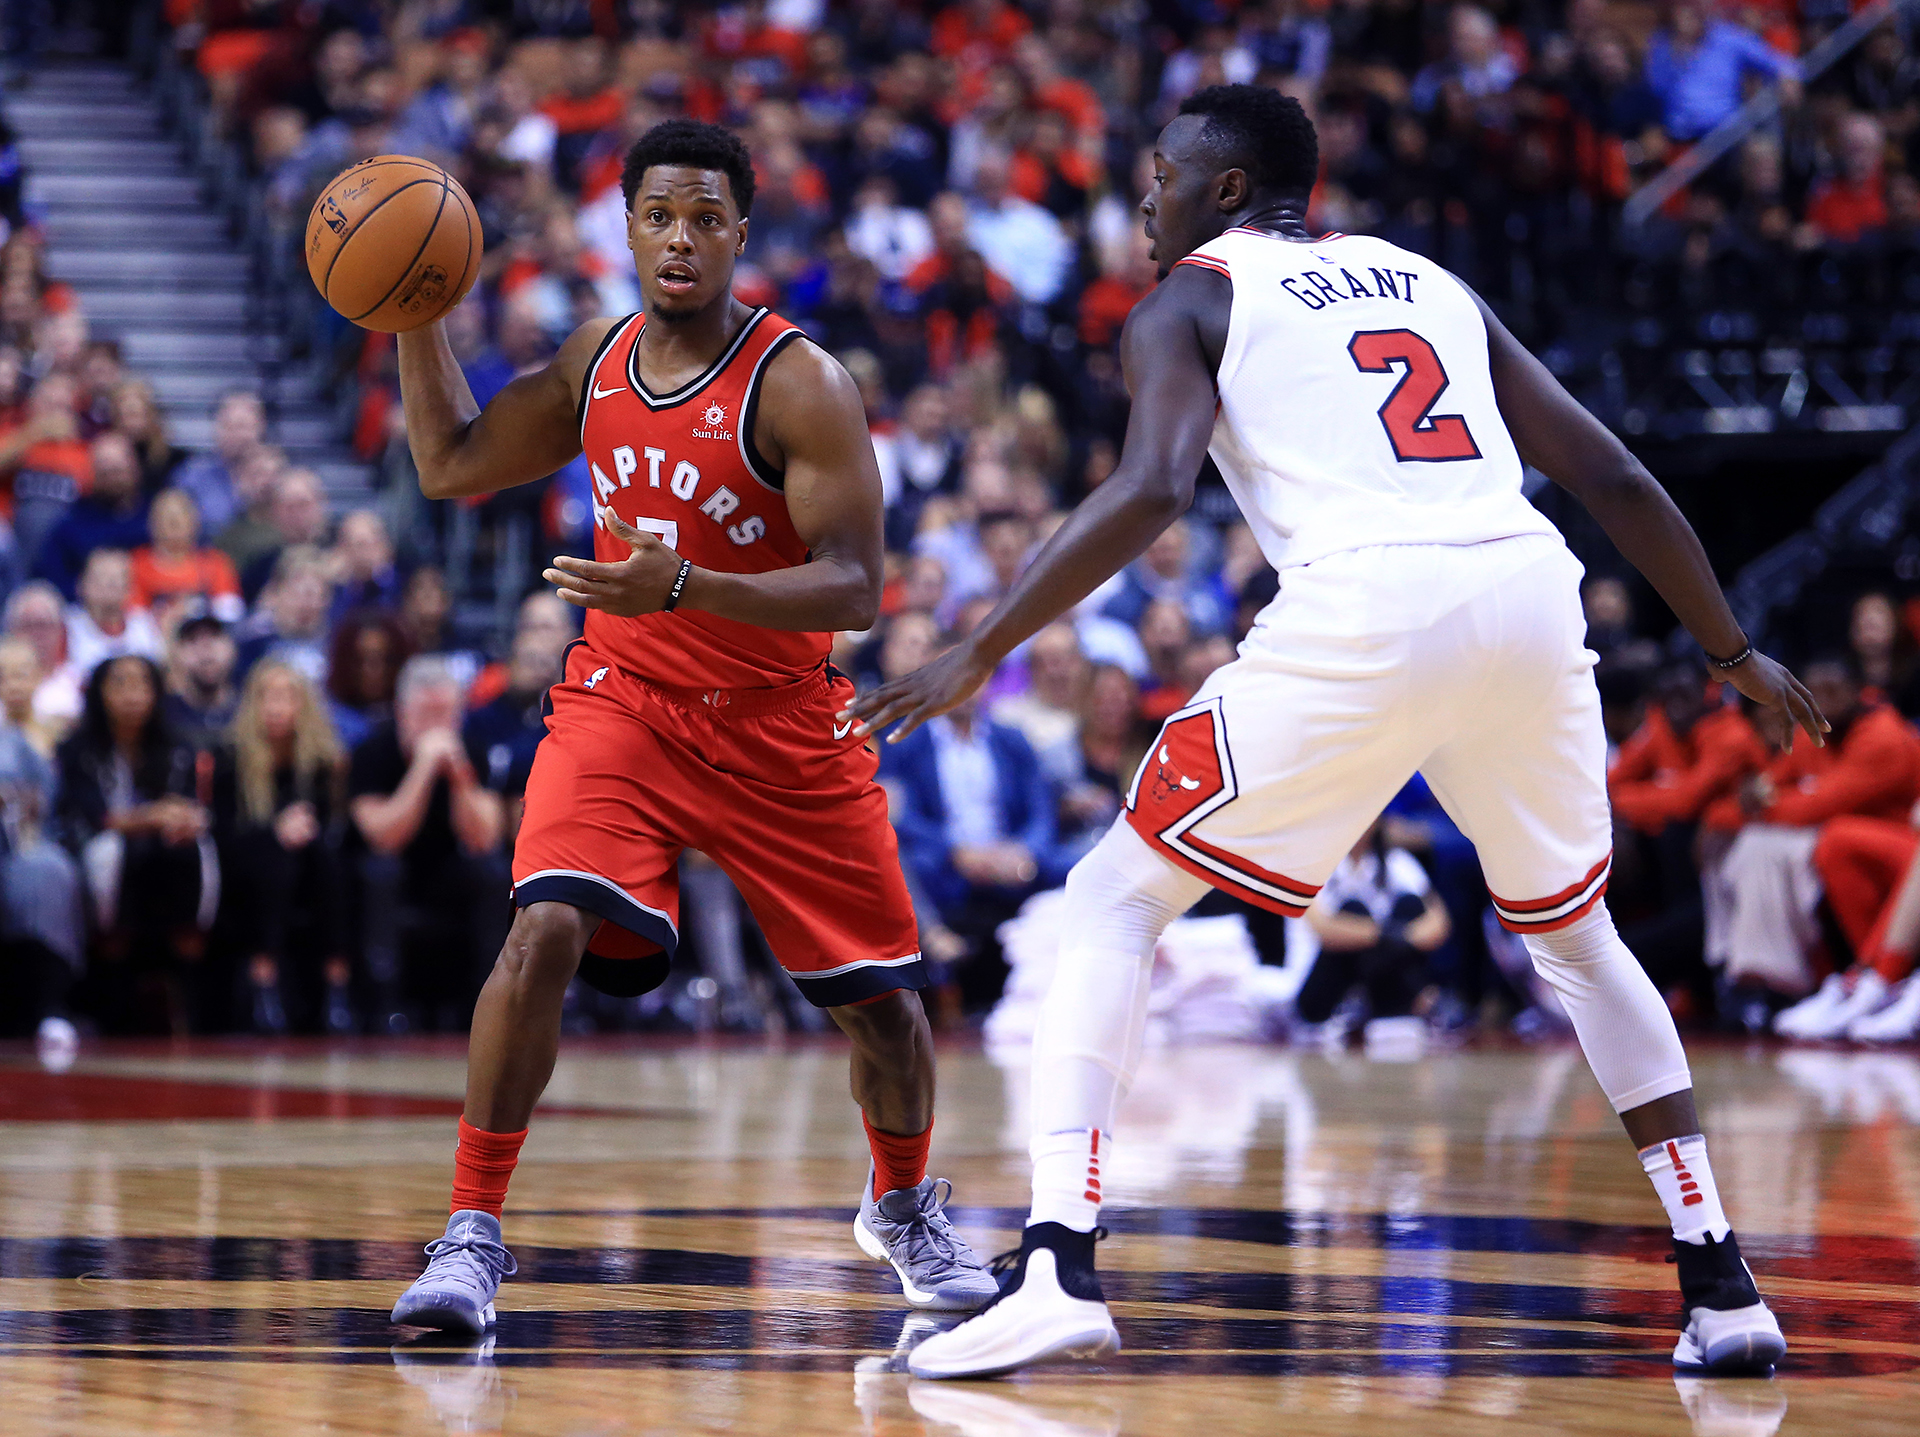 Kyle Lowry of the Toronto Raptors passes the ball during the second half against the Chicago Bulls at the Air Canada Centre on October 19, 2017 in Toronto, Canada. The Raptors beat the Bulls in their season opener 117-100. (Vaughn Ridley/Getty Images)